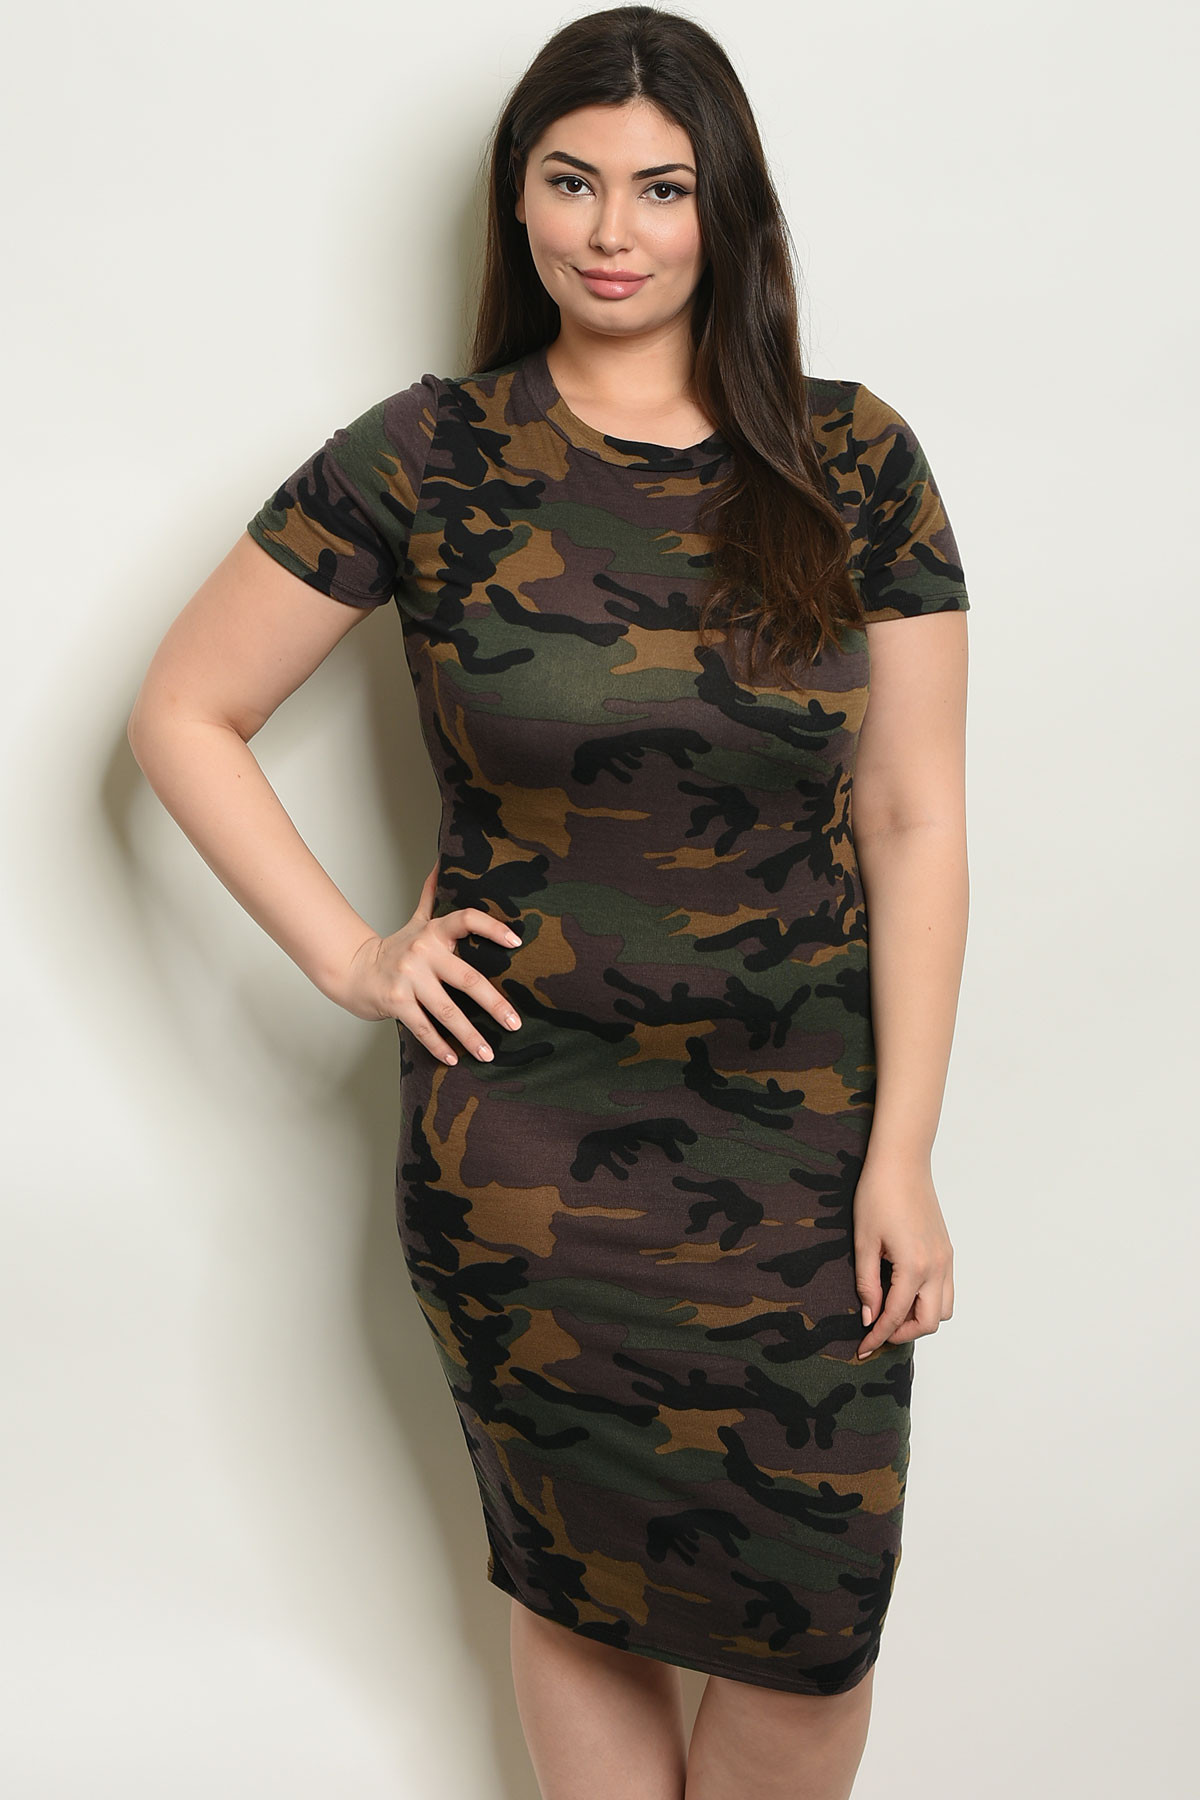 C41-A-1-D6299X OLIVE CAMOUFLAGE PLUS SIZE DRESS 2-2